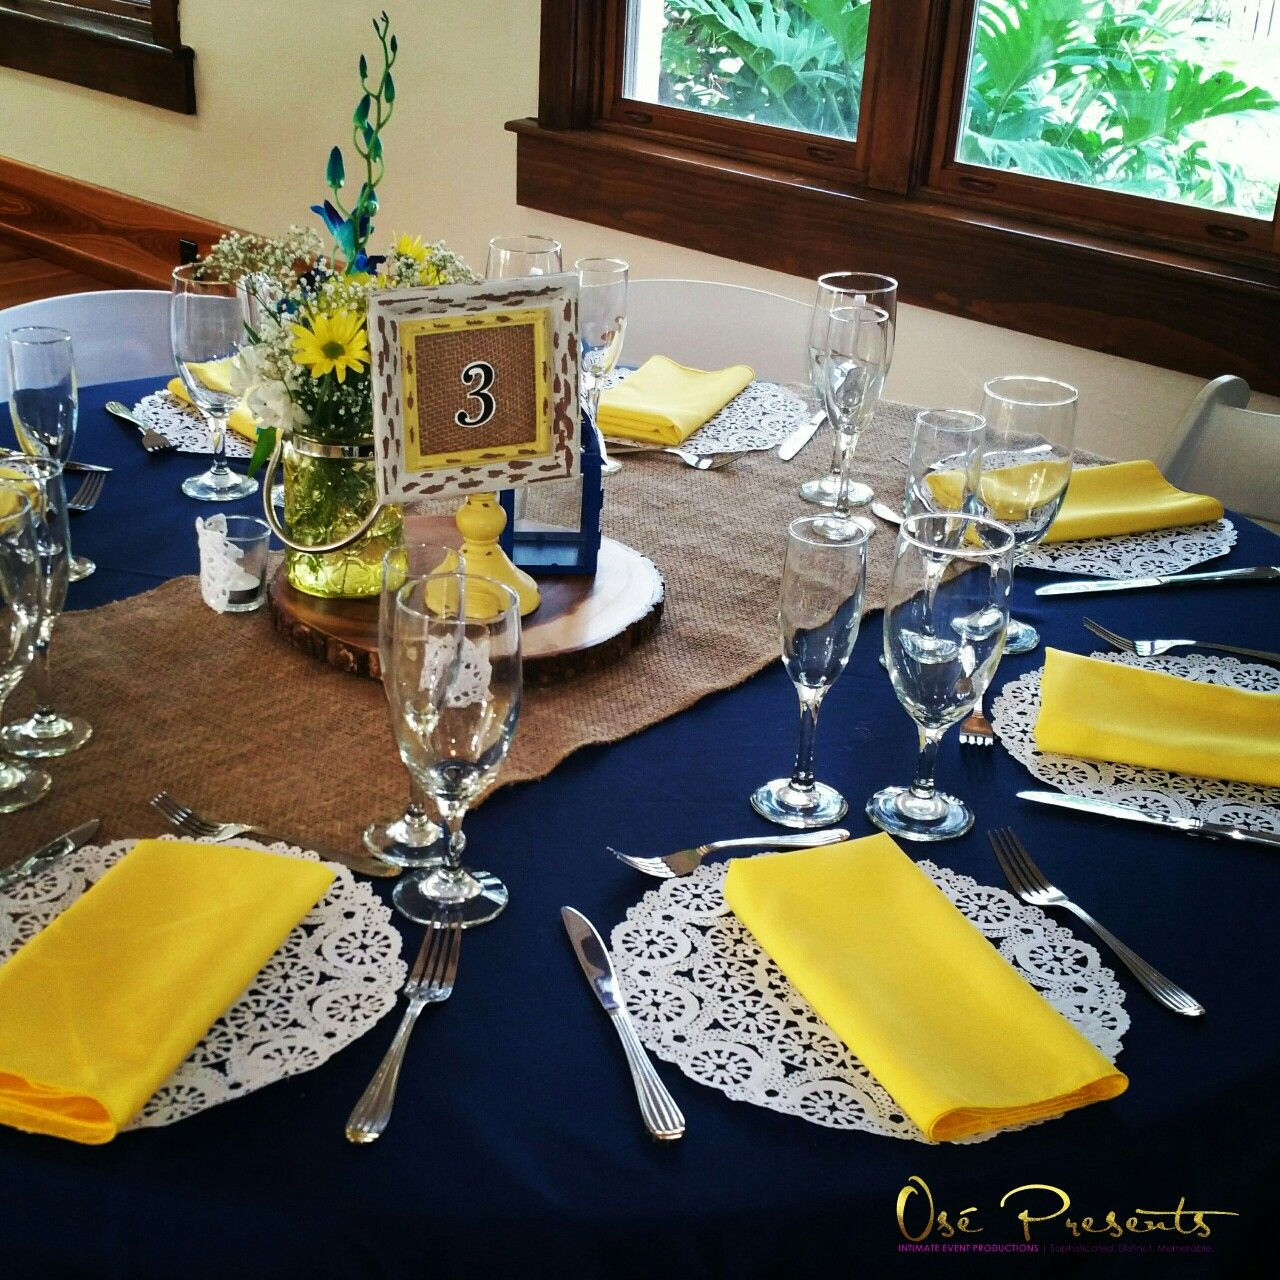 7 Barn Wedding Decoration Ideas For A Spring Wedding: Navy And Yellow Rustic Themed Wedding Table Decor